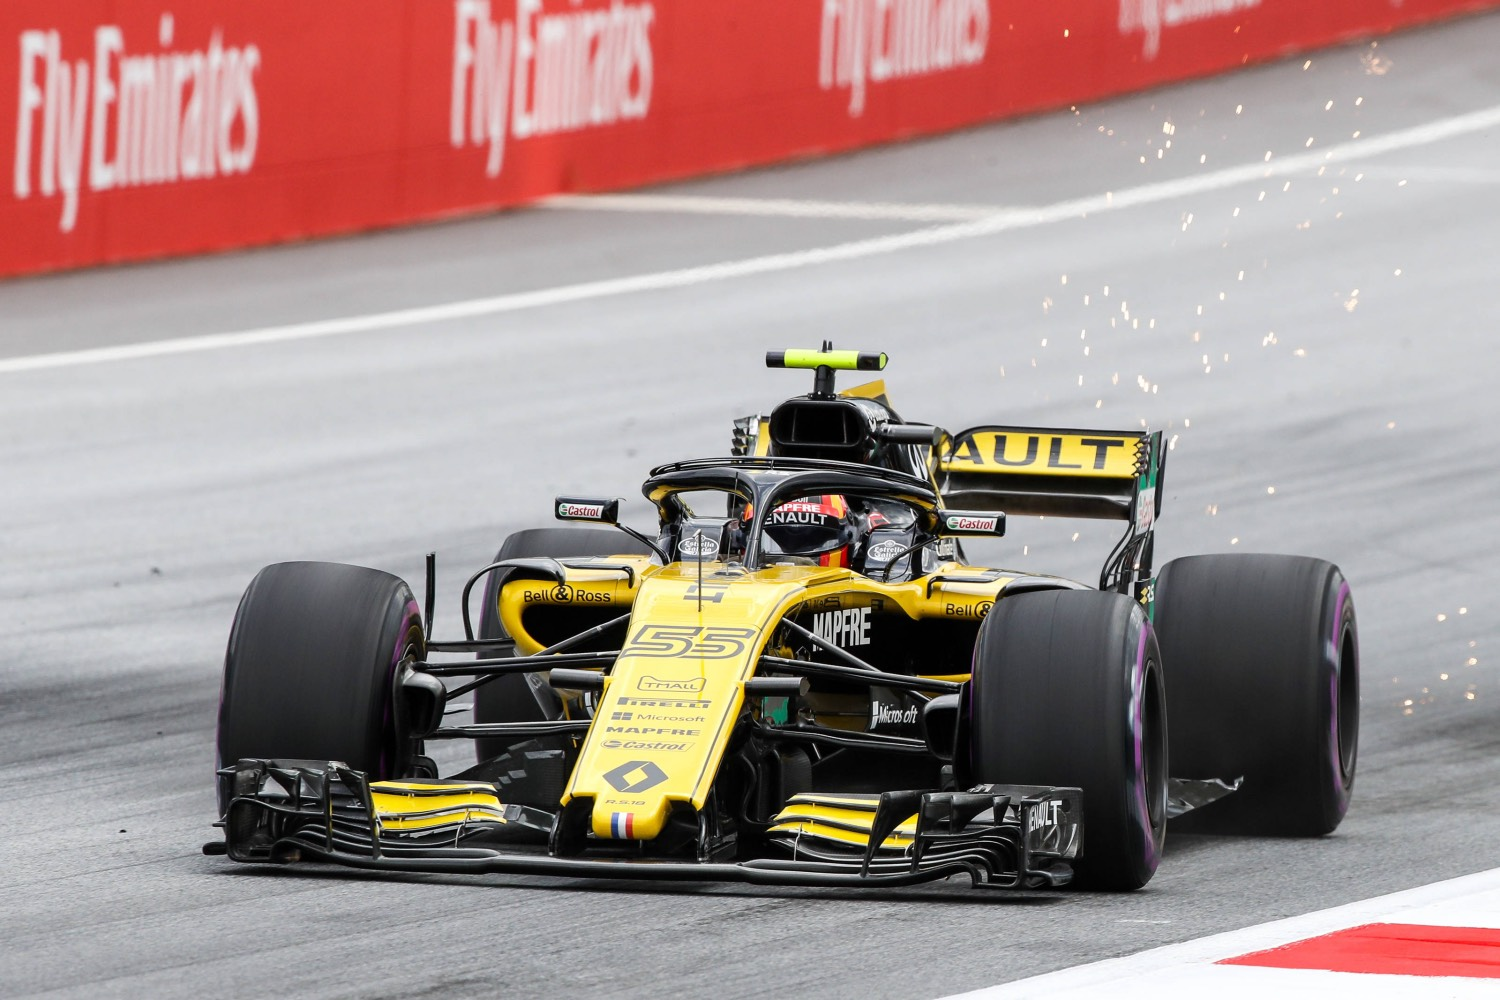 FORMULA 1 - GP of Austria 2018